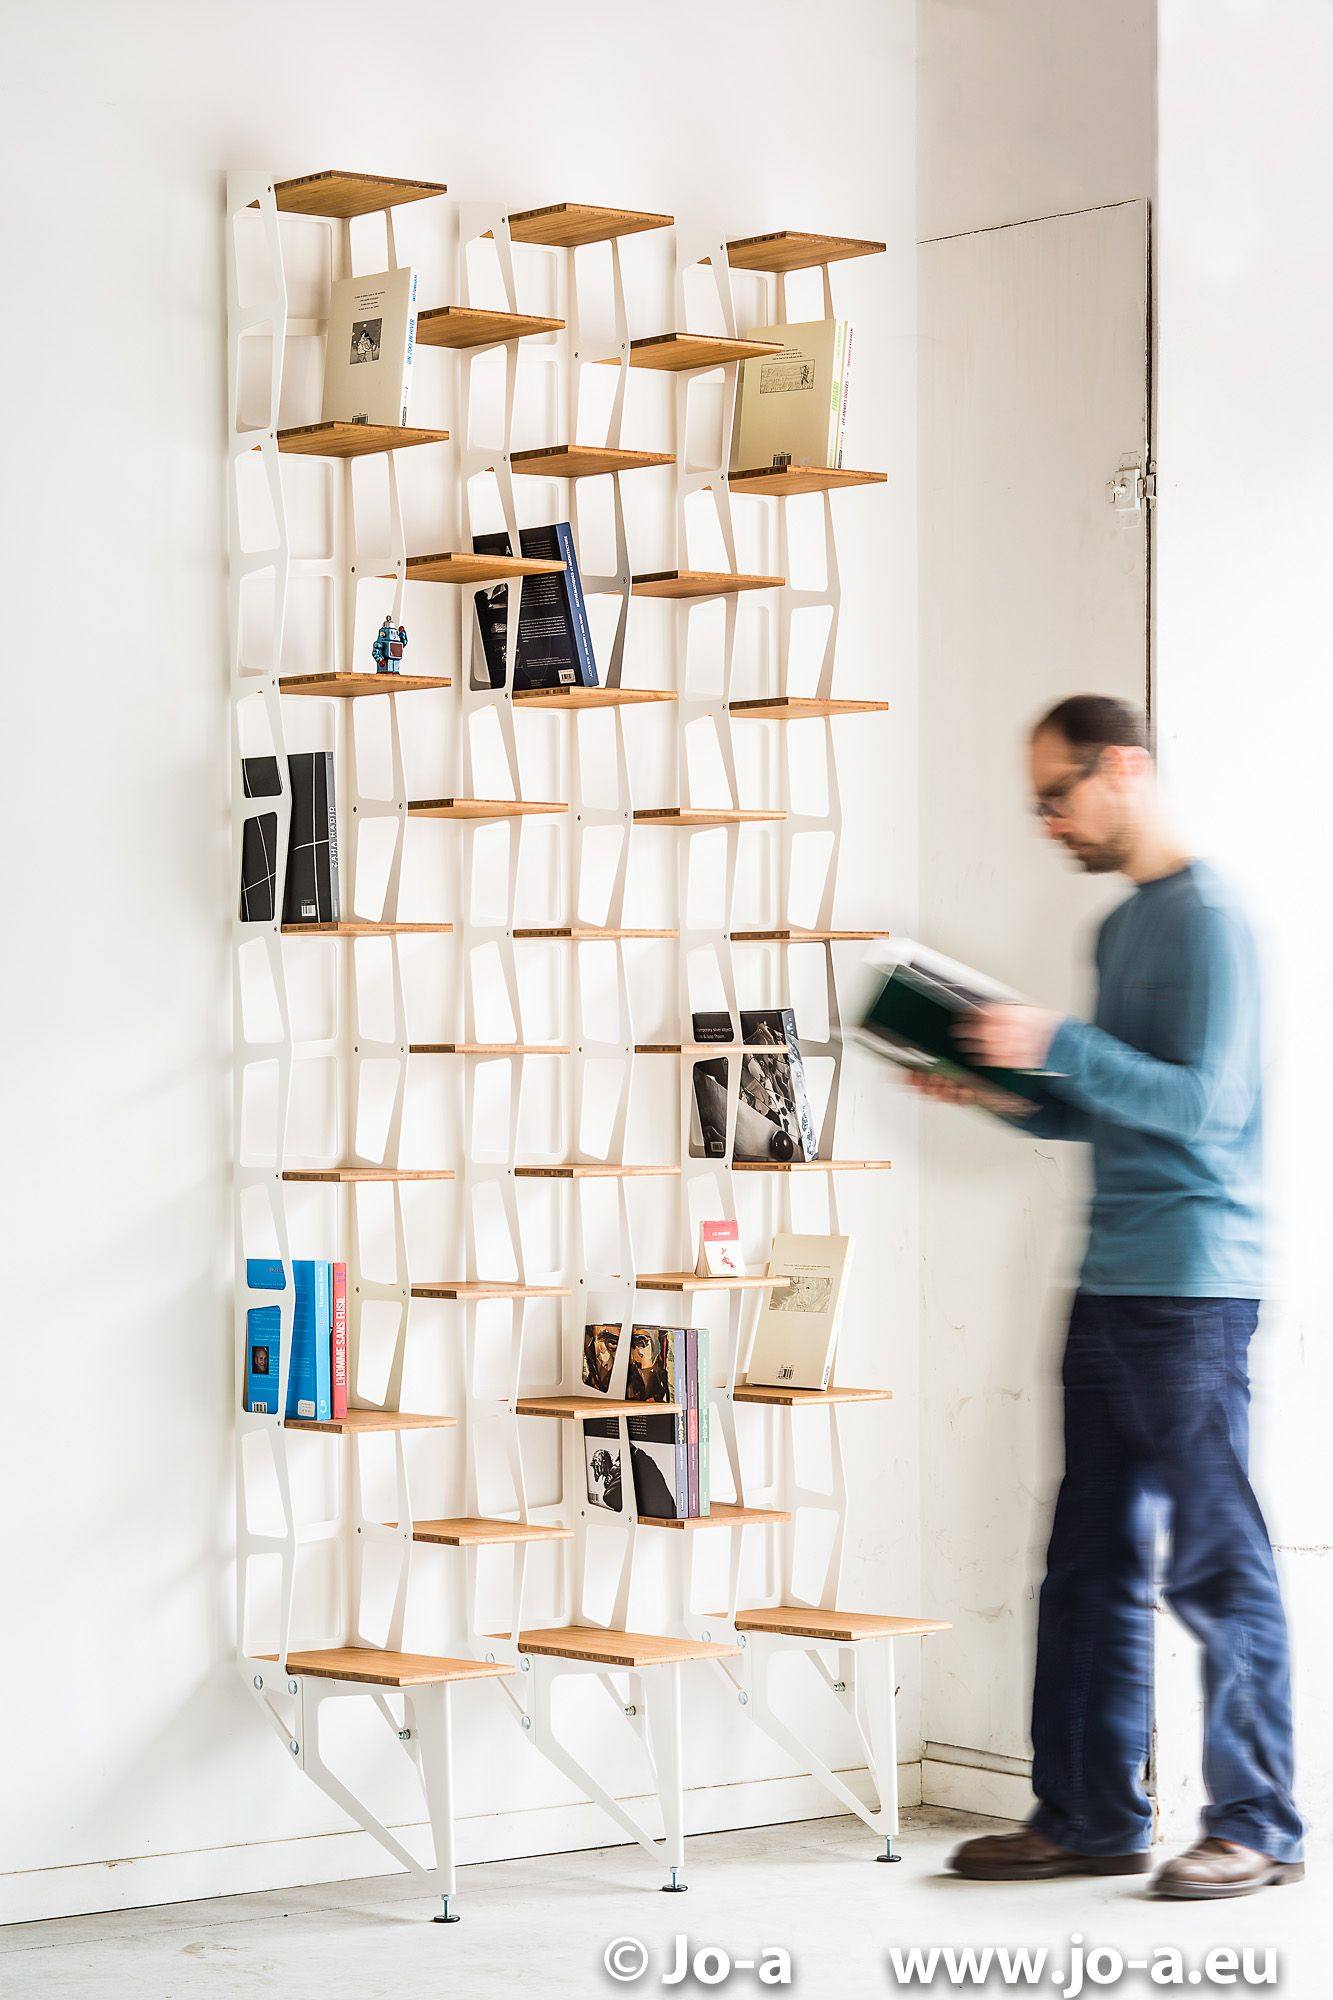 C Li Modular Bookshelf White Design Shelving System By Jo A  # Bibliotheque Design Blanc